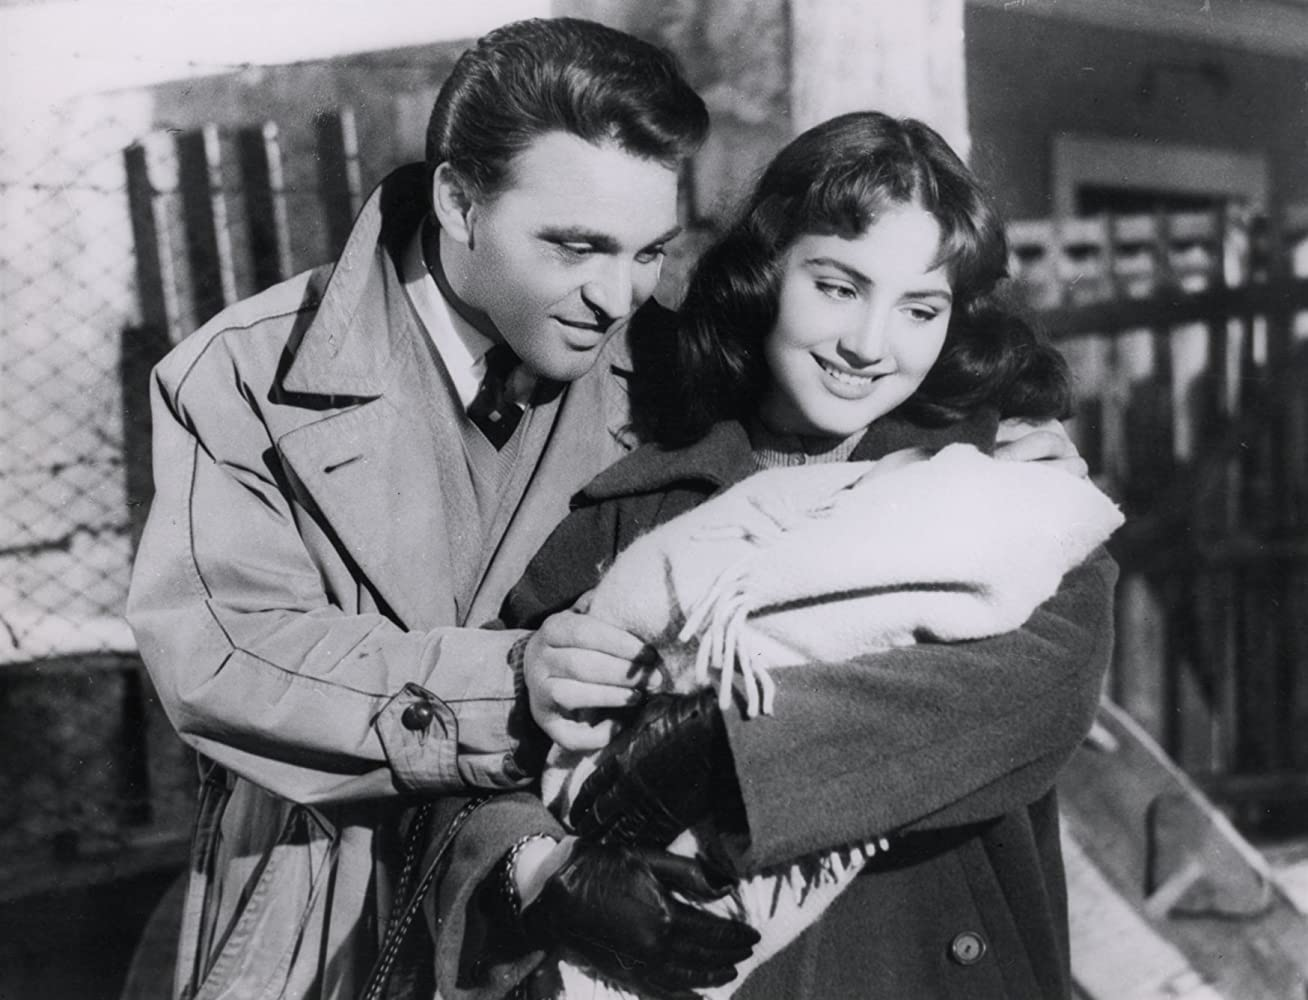 Franco Fabrizi and Leonora Ruffo in I vitelloni (1953)